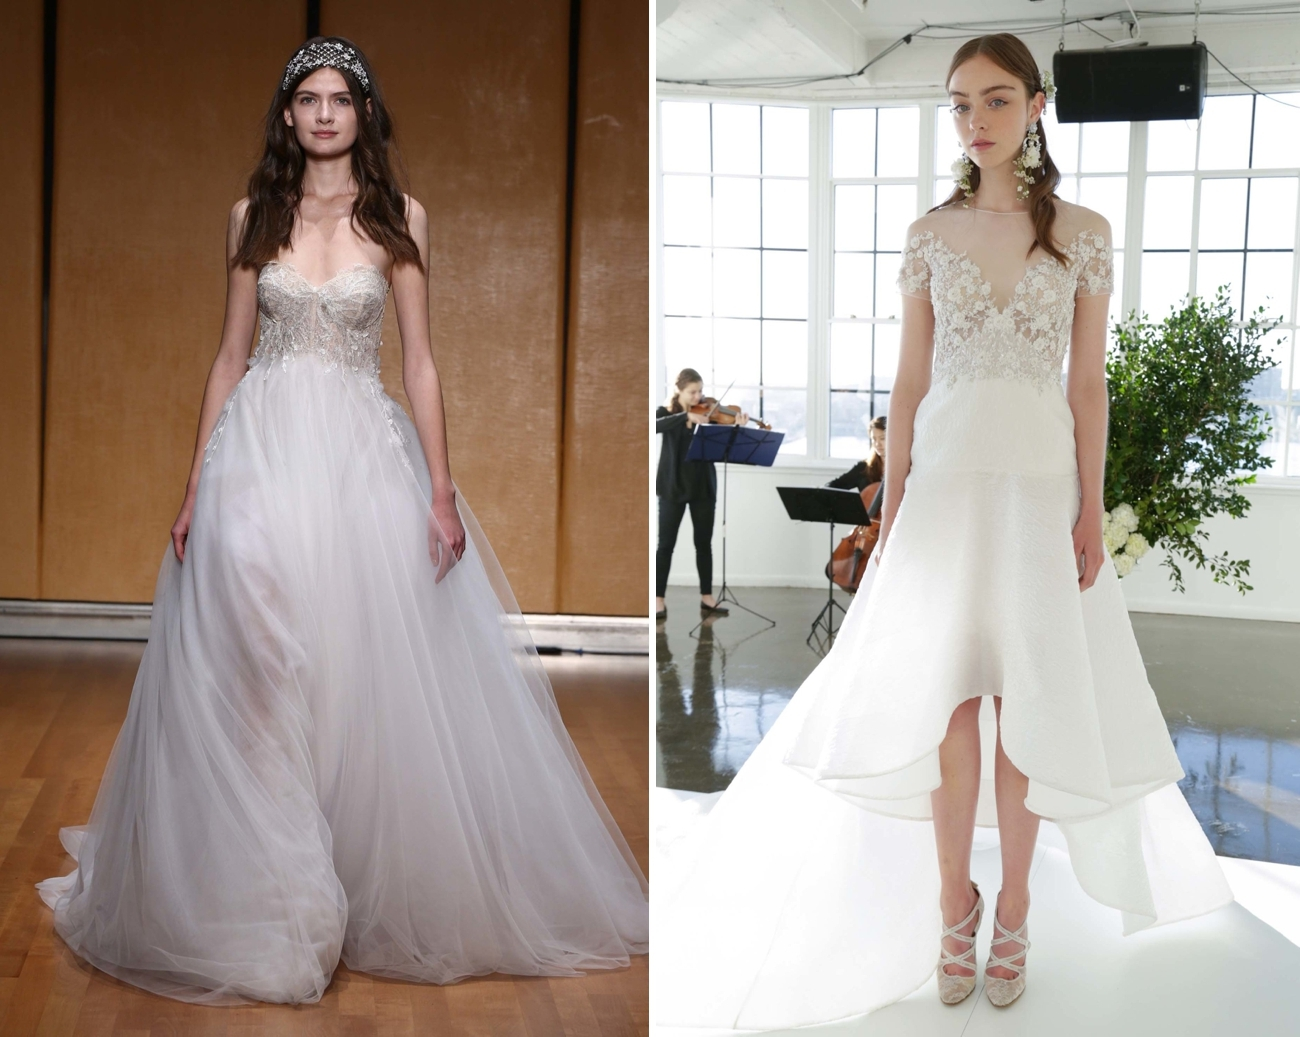 Top 10 Wedding Dress Trends for 2017 | SouthBound Bride